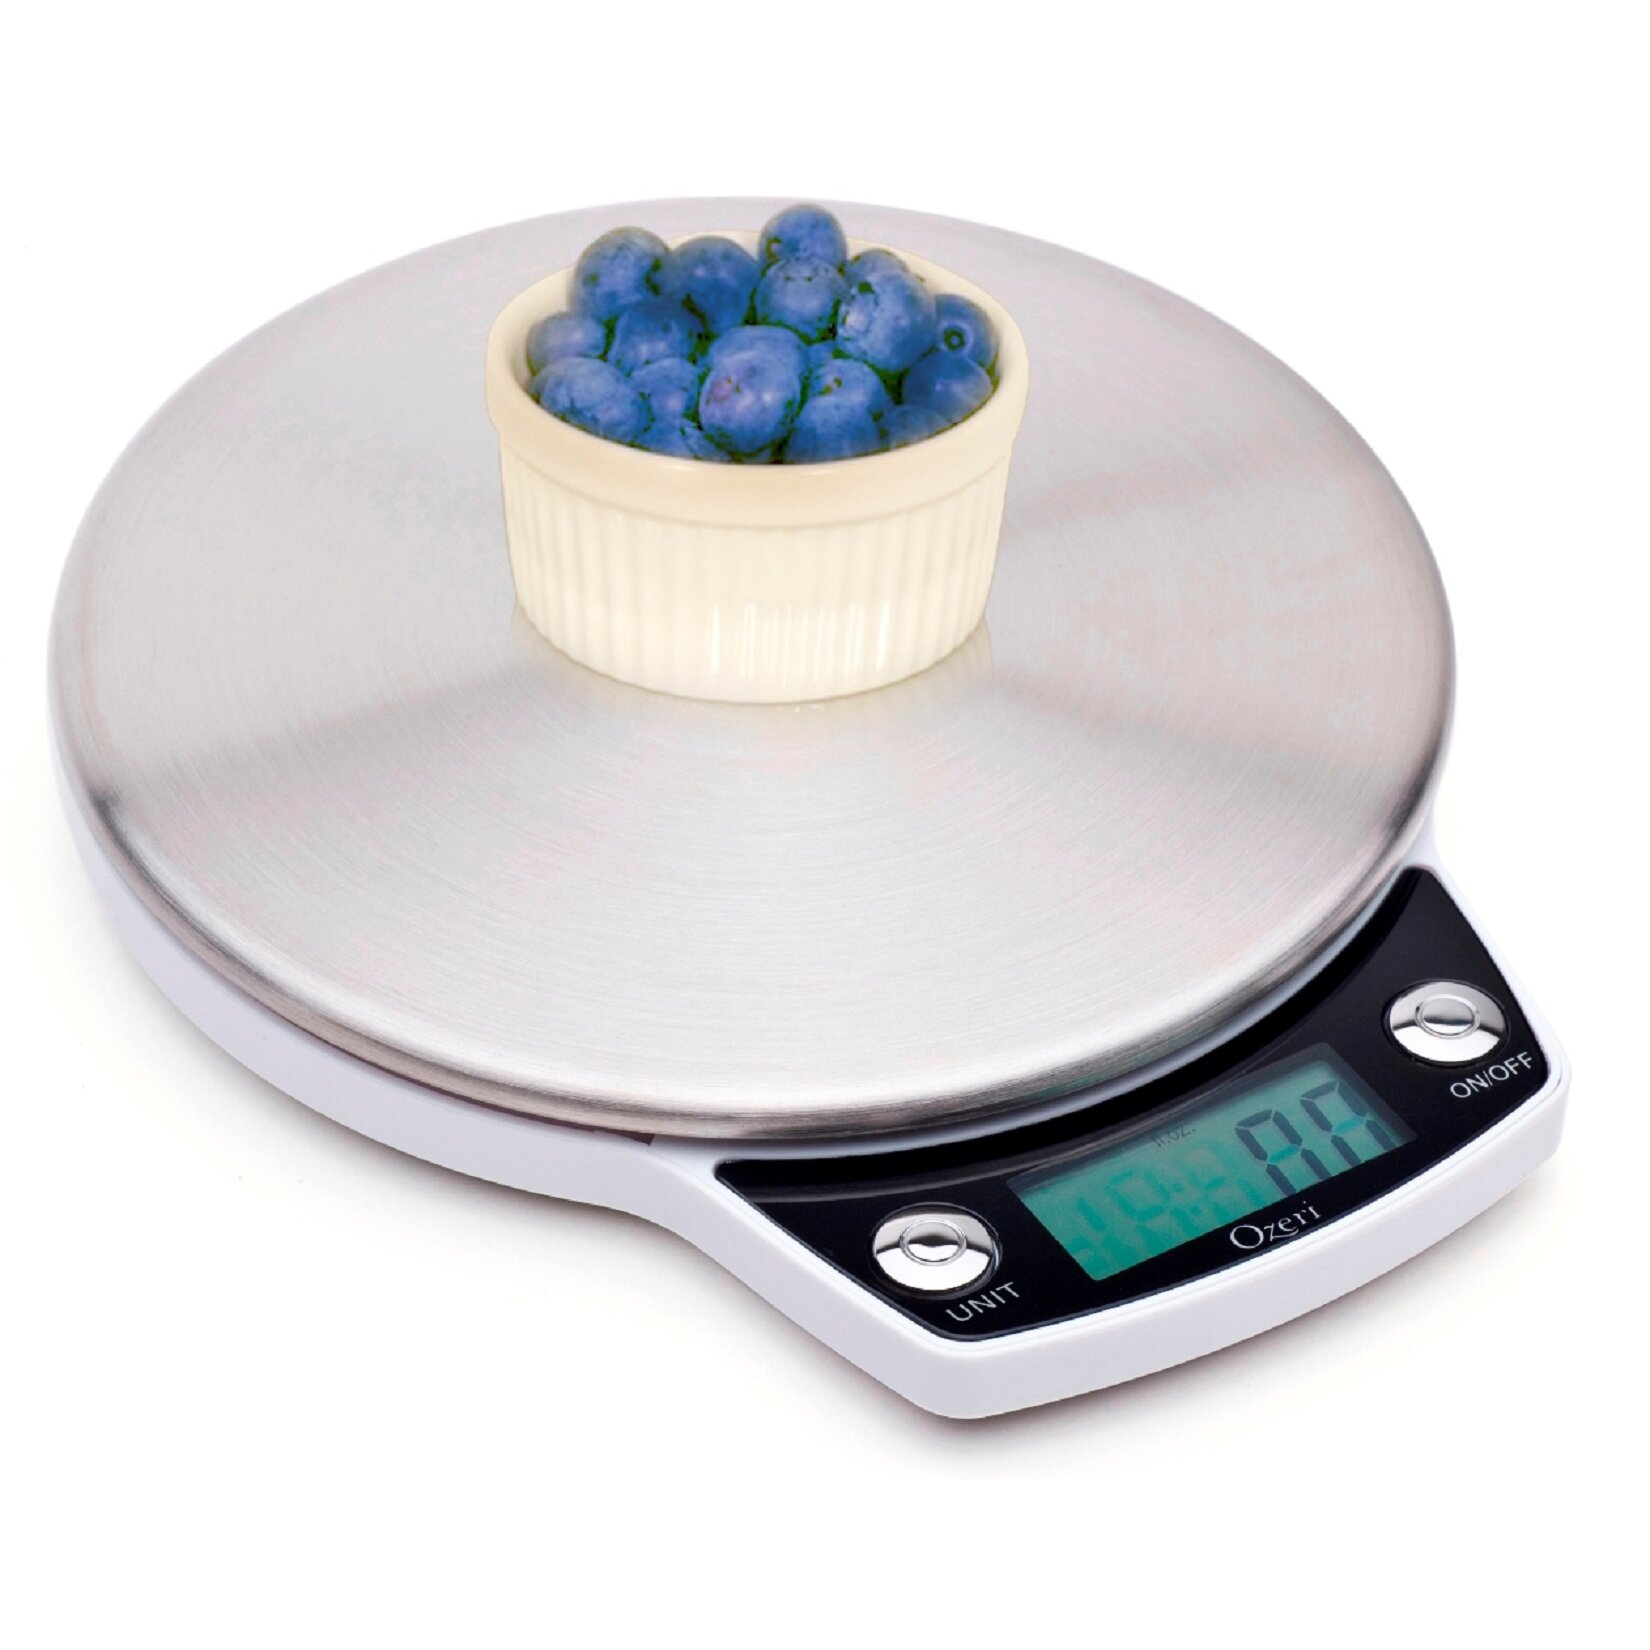 Ozeri precision pro stainless steel digital kitchen scale for How much is a kitchen scale